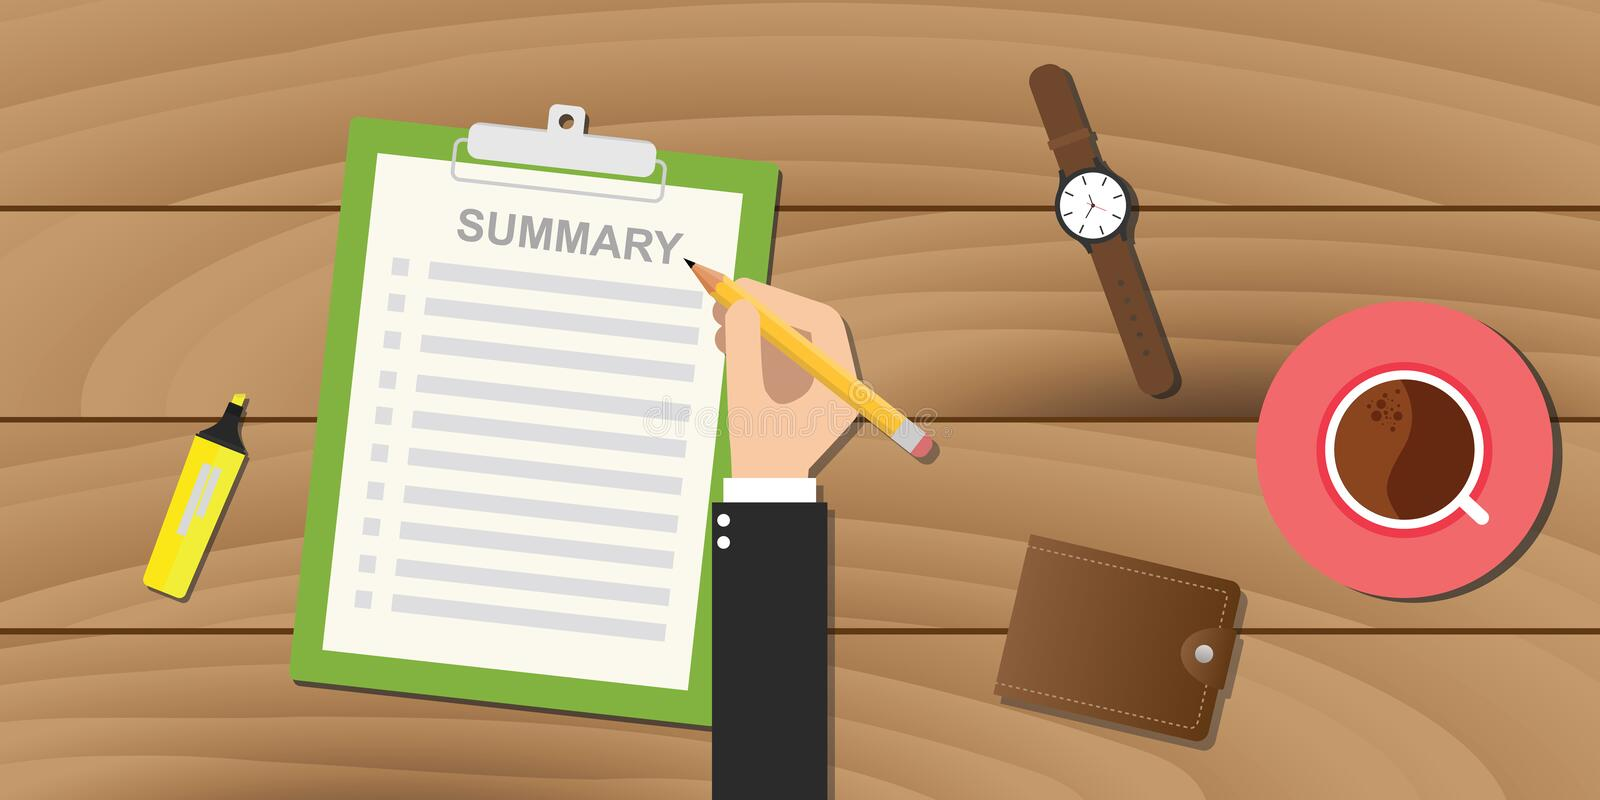 Summary report business clipboard executive hand vector illustration